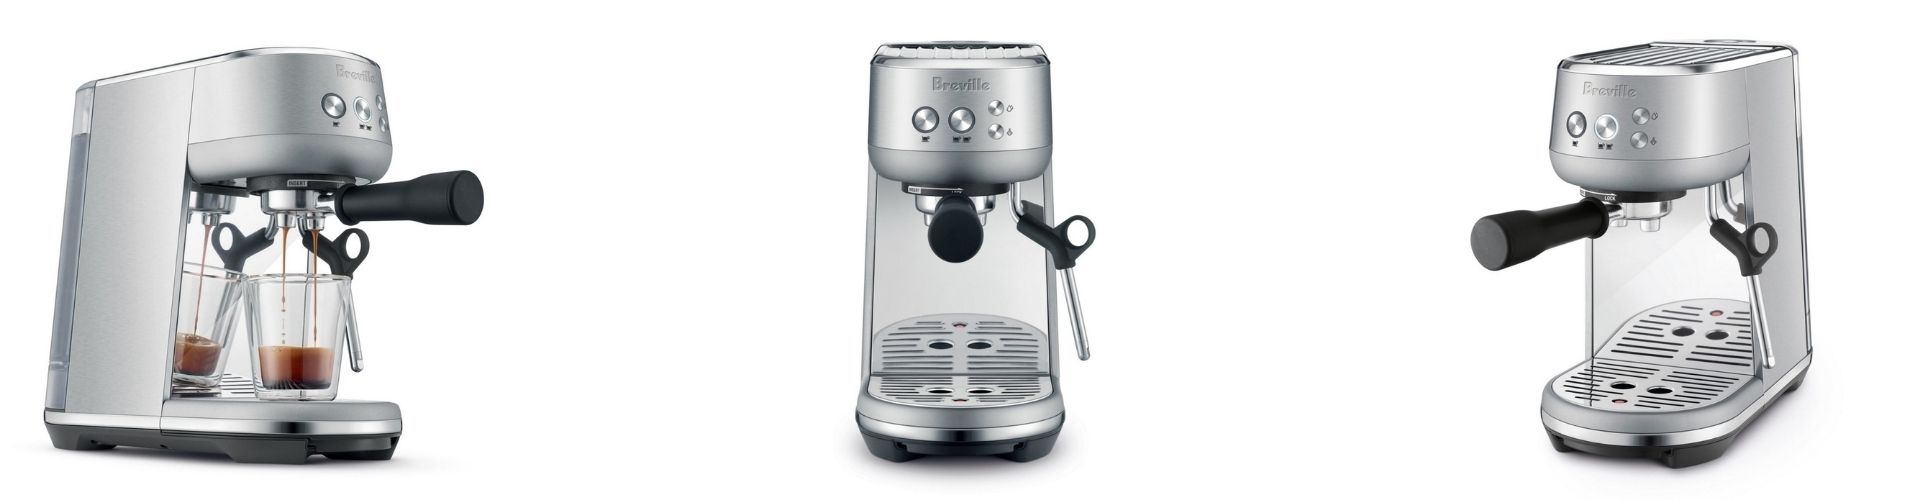 Breville Bambino: Starter Espresso Machine with Superb Coffee Quality and Value